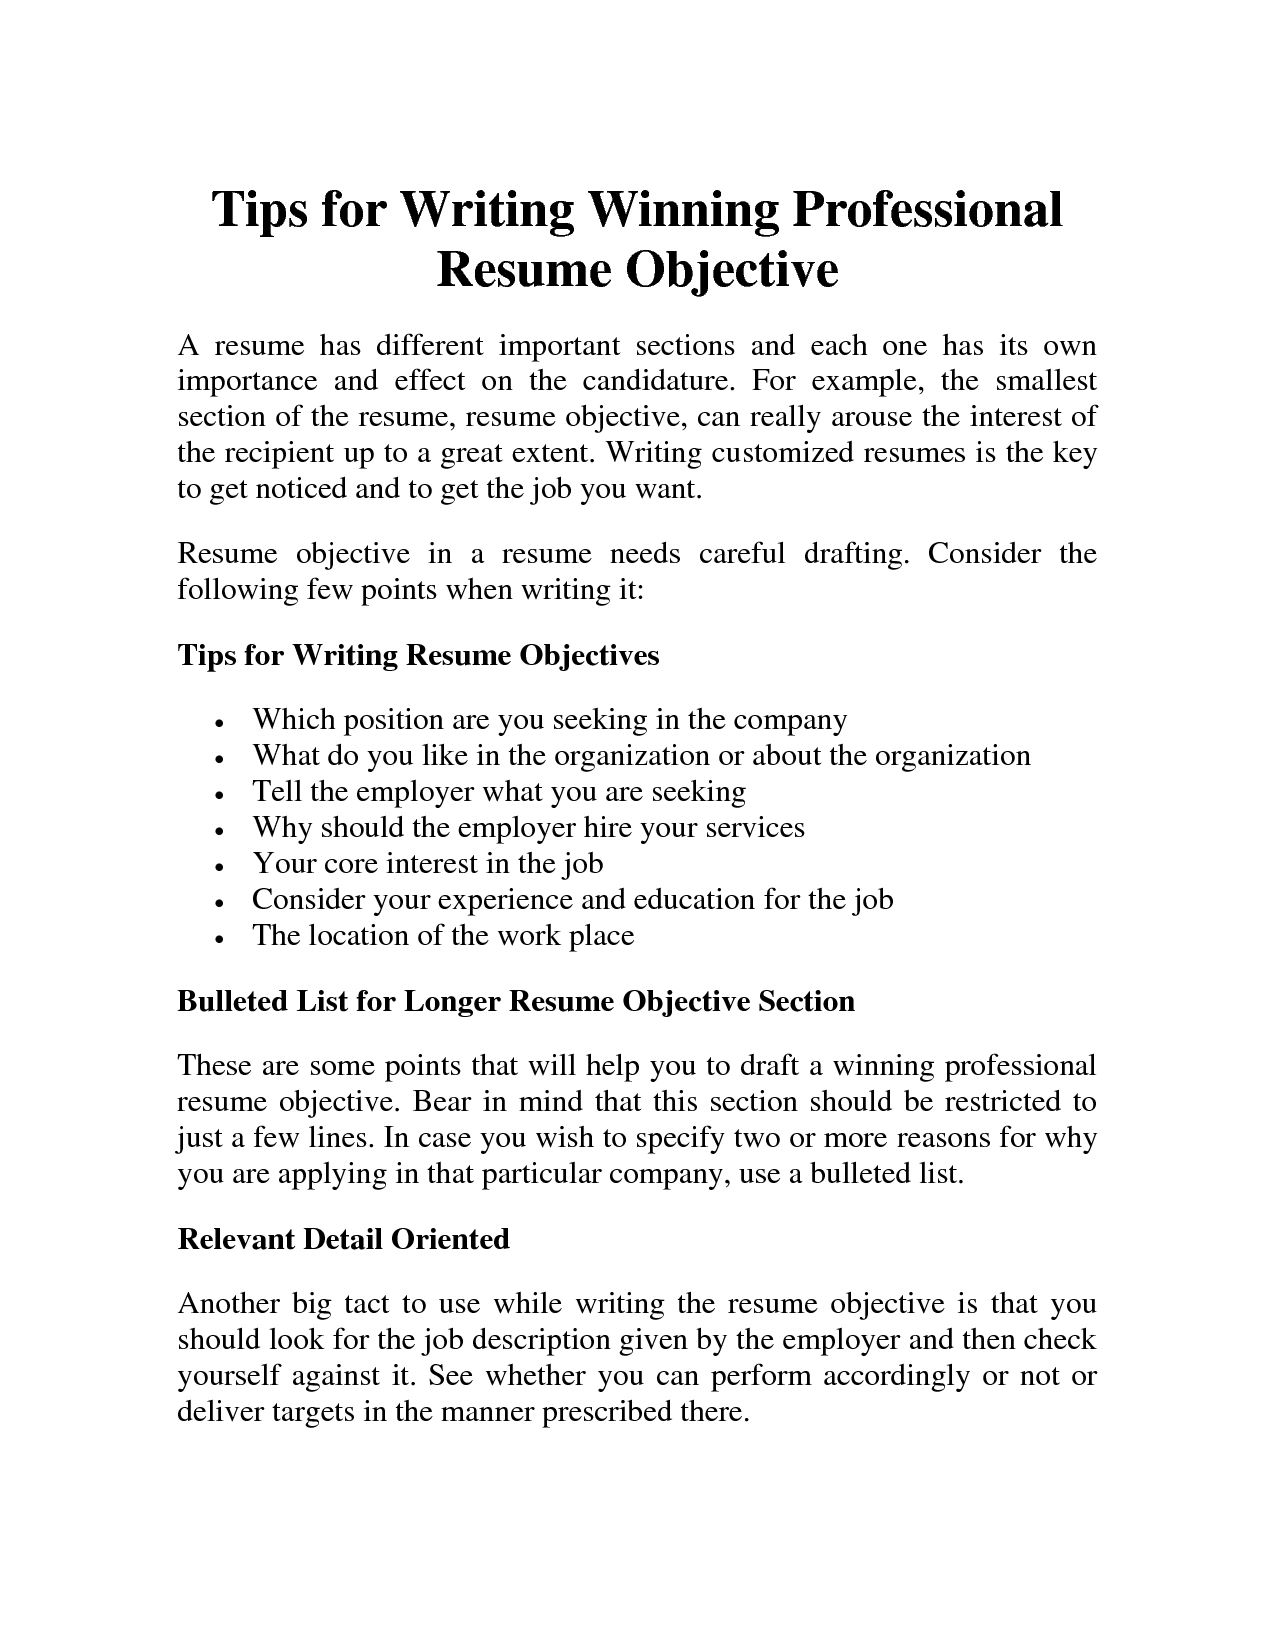 Professional Resume Objective Samples Resume Objective Examples Good Objective For Resume Resume Objective